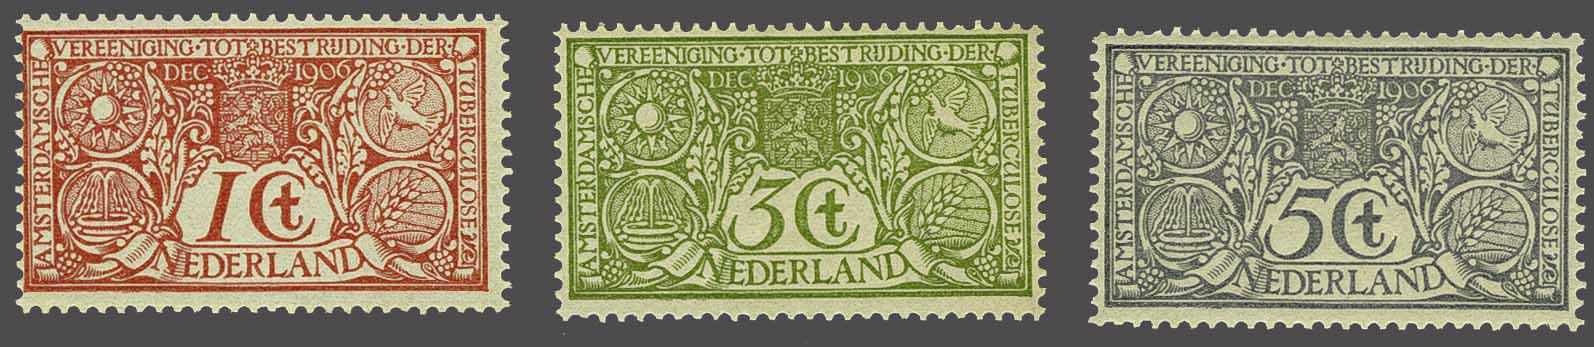 Lot 1834 - Netherlands and former colonies Netherlands -  Corinphila Veilingen Auction 245-246 Day 3 - Netherlands and former colonies - Single lots, Collections and lots, Boxes and literature